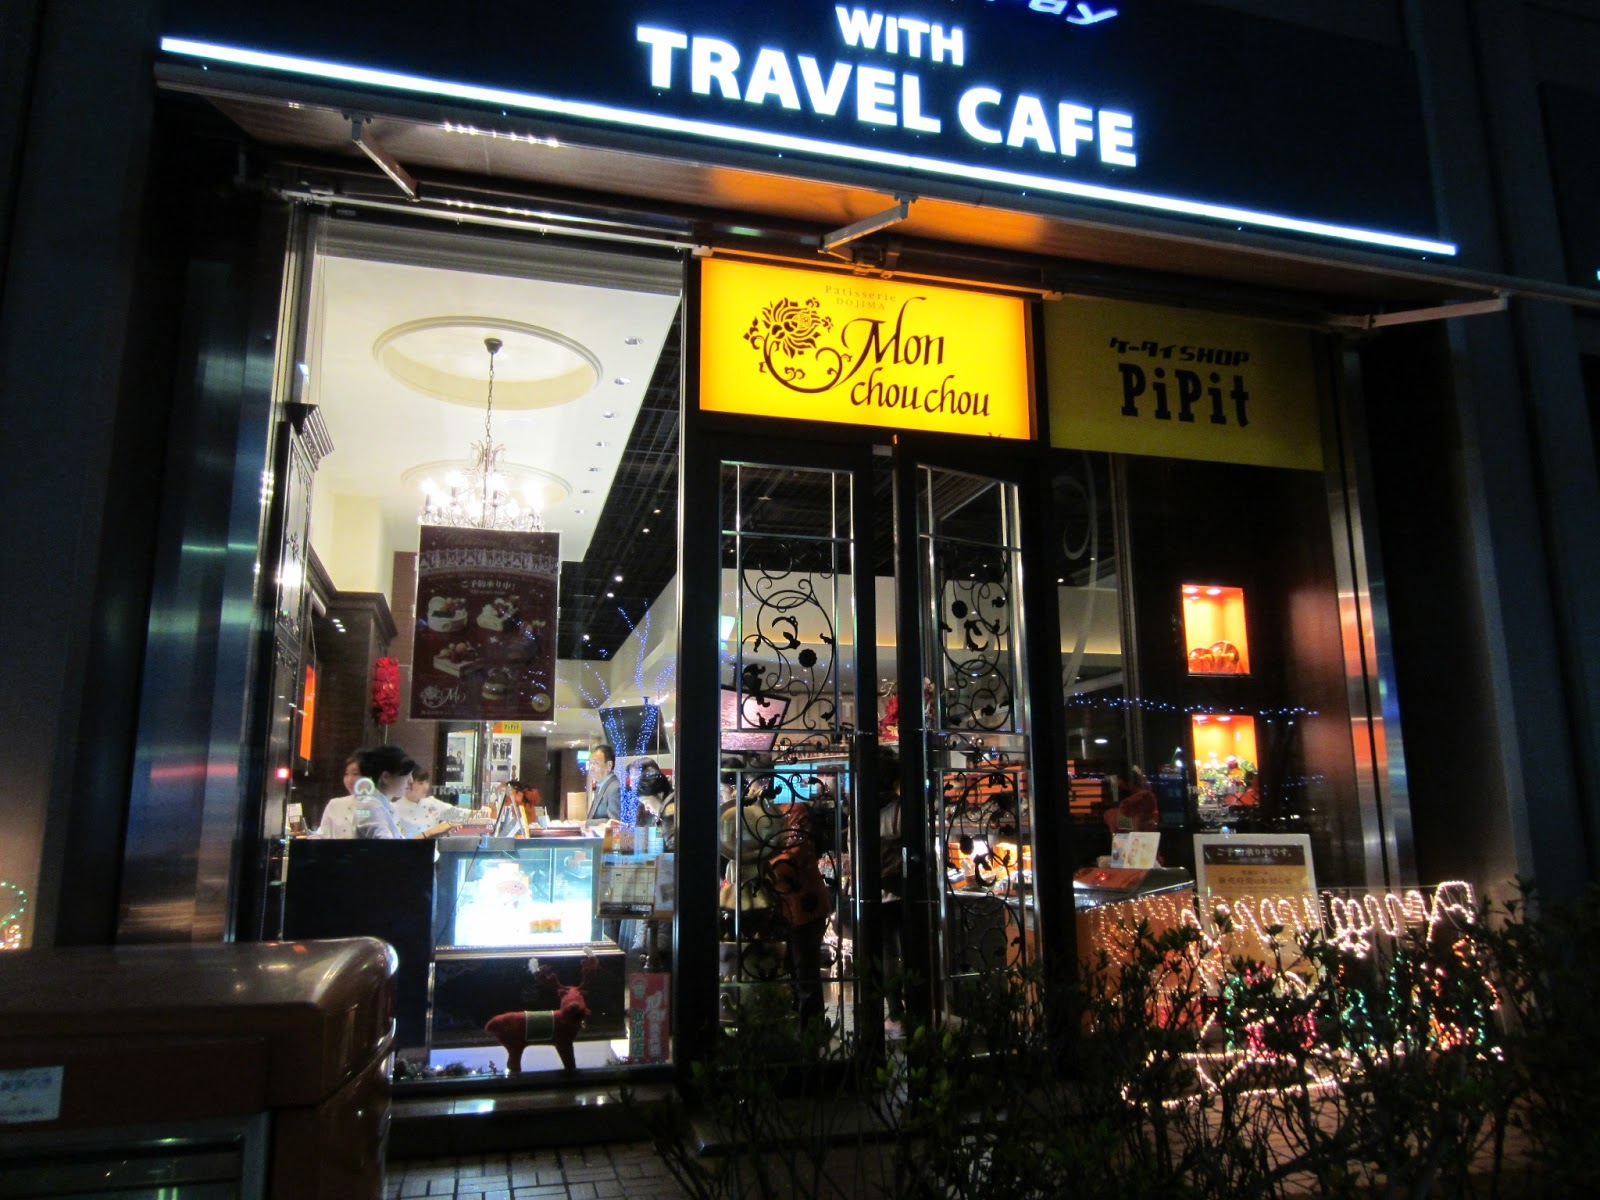 nagoya eats food restaurants travel cafe one slice of